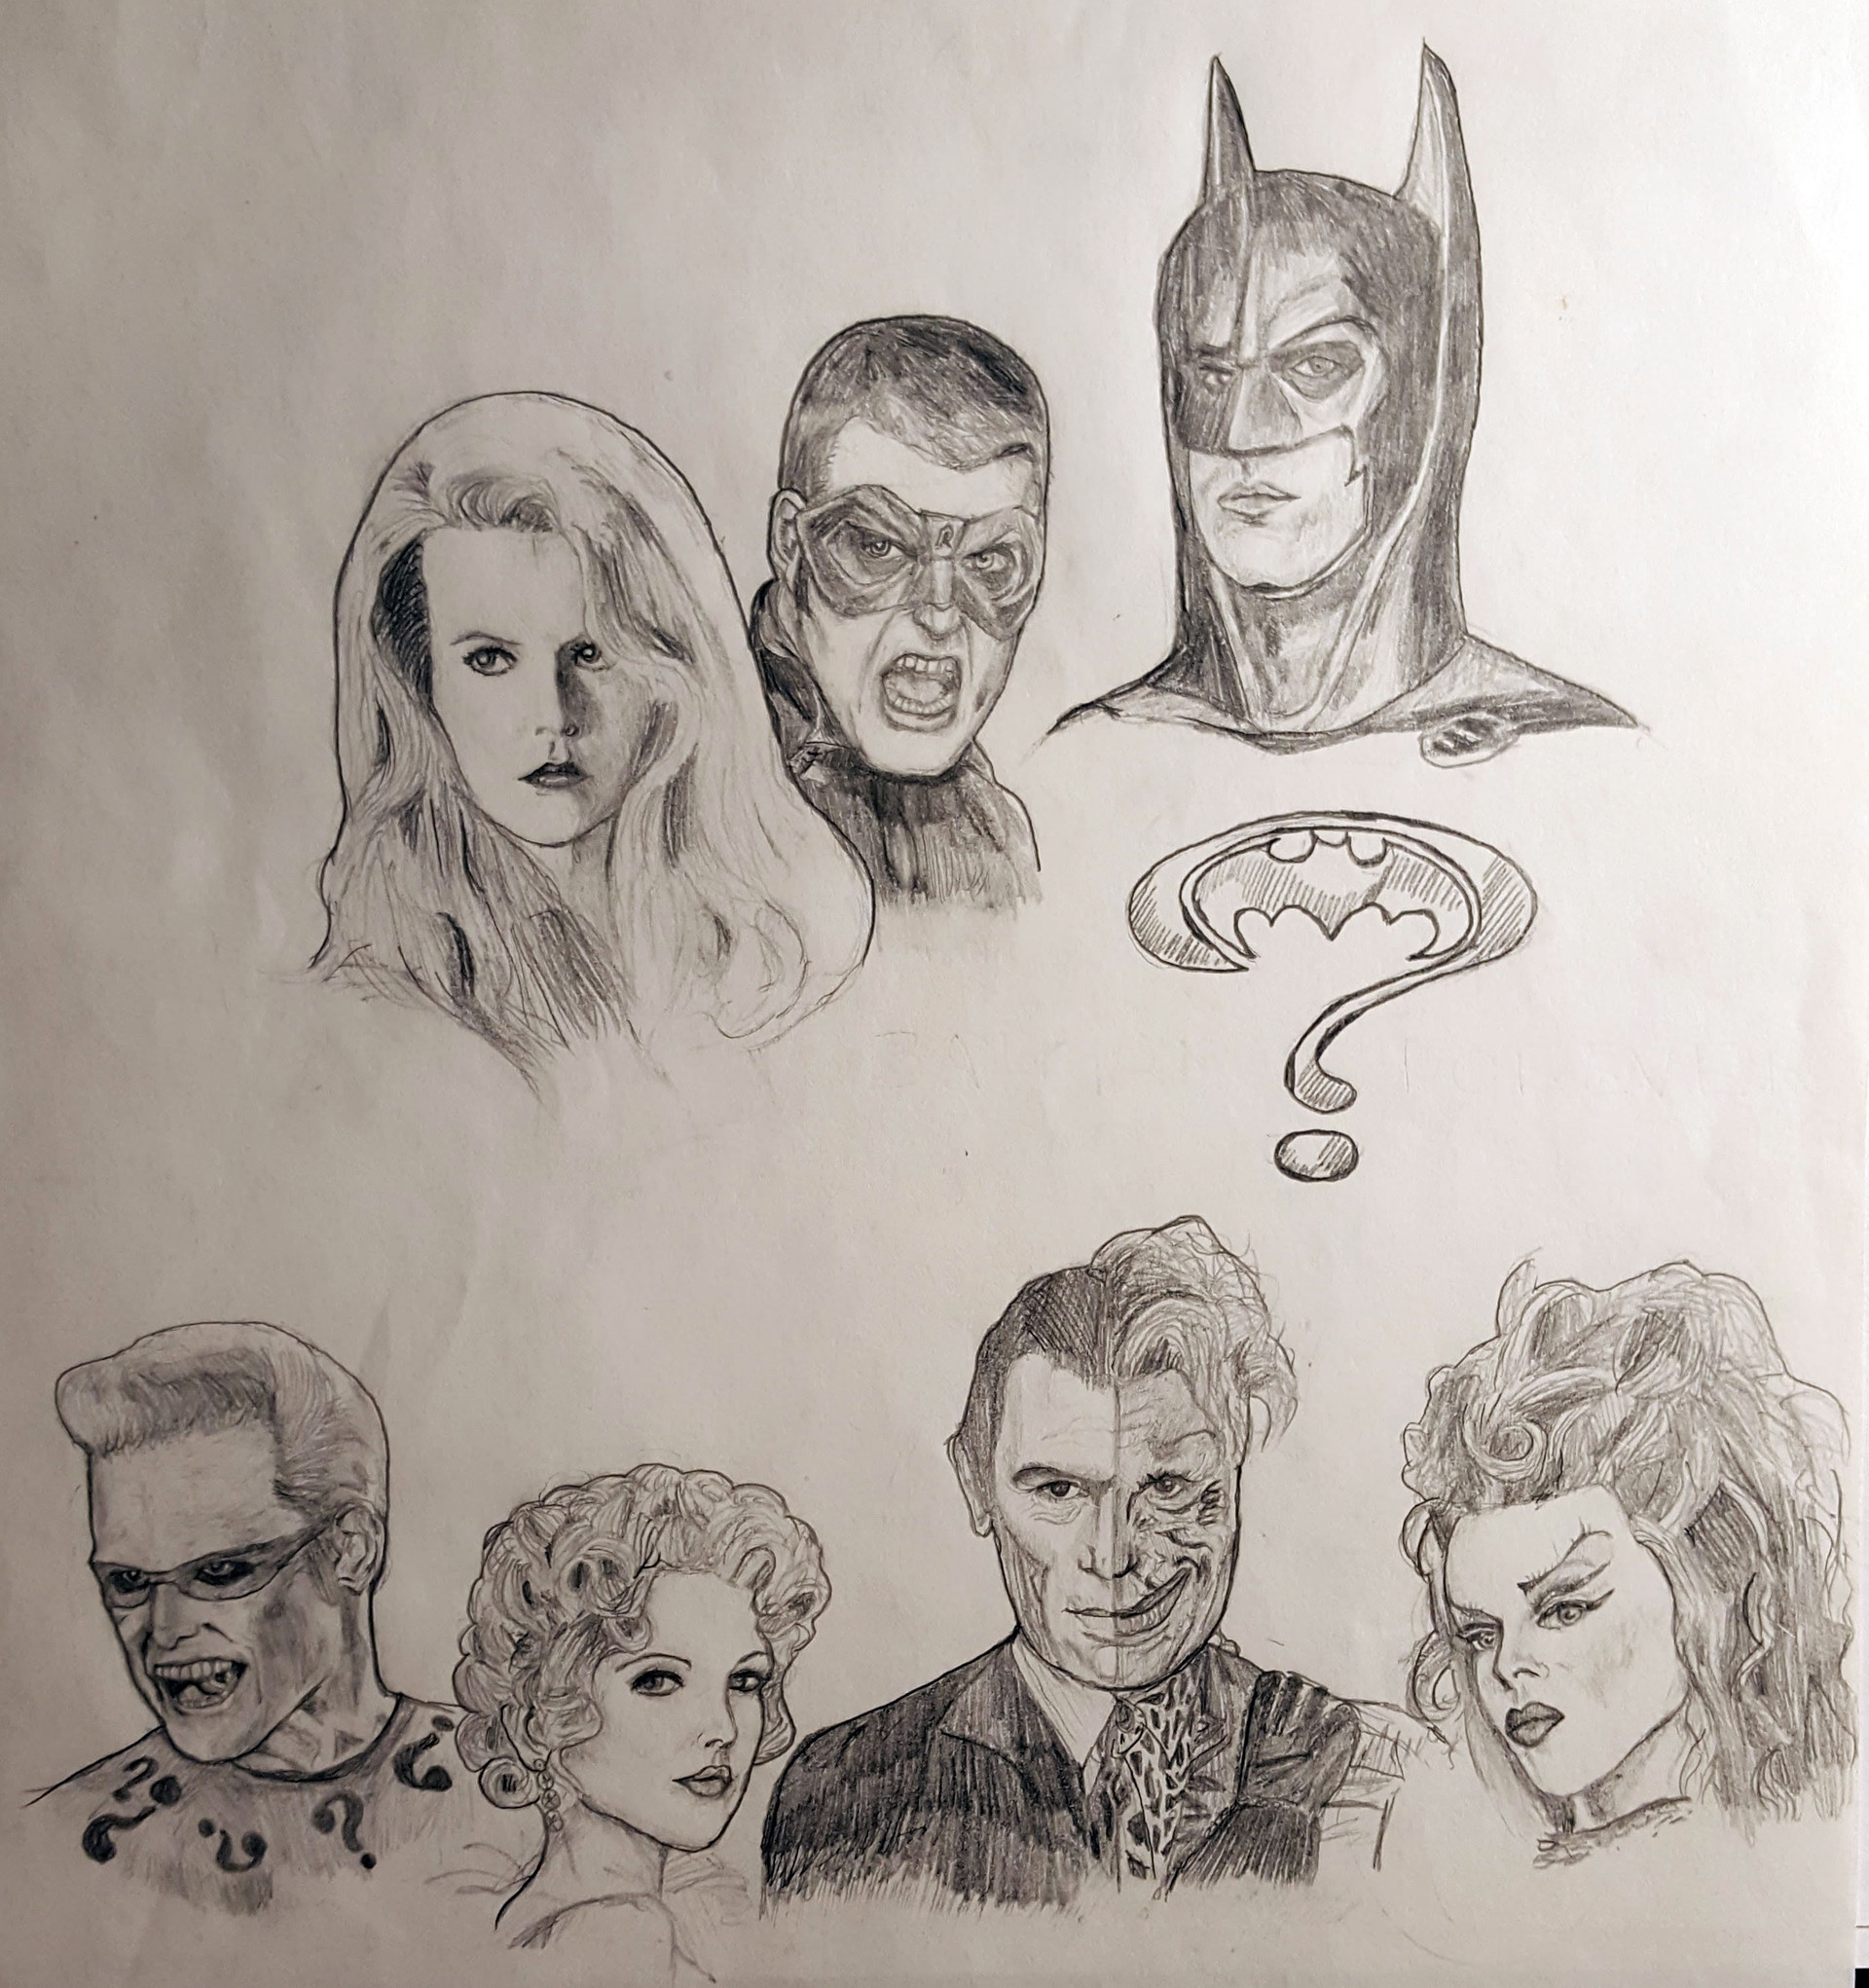 Benni amato batman forever cast